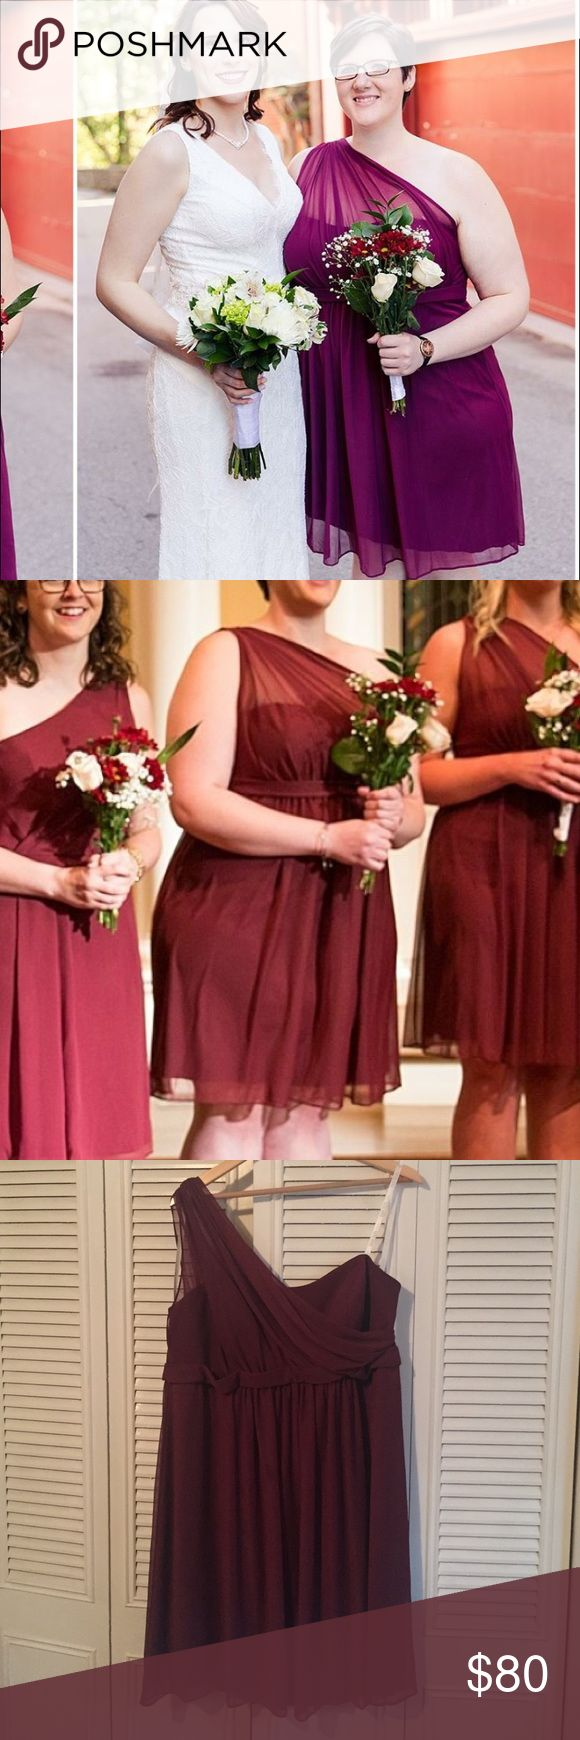 Davids Bridal Dress Plus Size Color is Wine (burgundy) and is often back-order because it is online only! One shoulder with sheer cross-chest strap. Flowy on the bottom. No alterations and worn about 5 hours. Has been hanging with plastic cover since. Size 20. David's Bridal Dresses Wedding